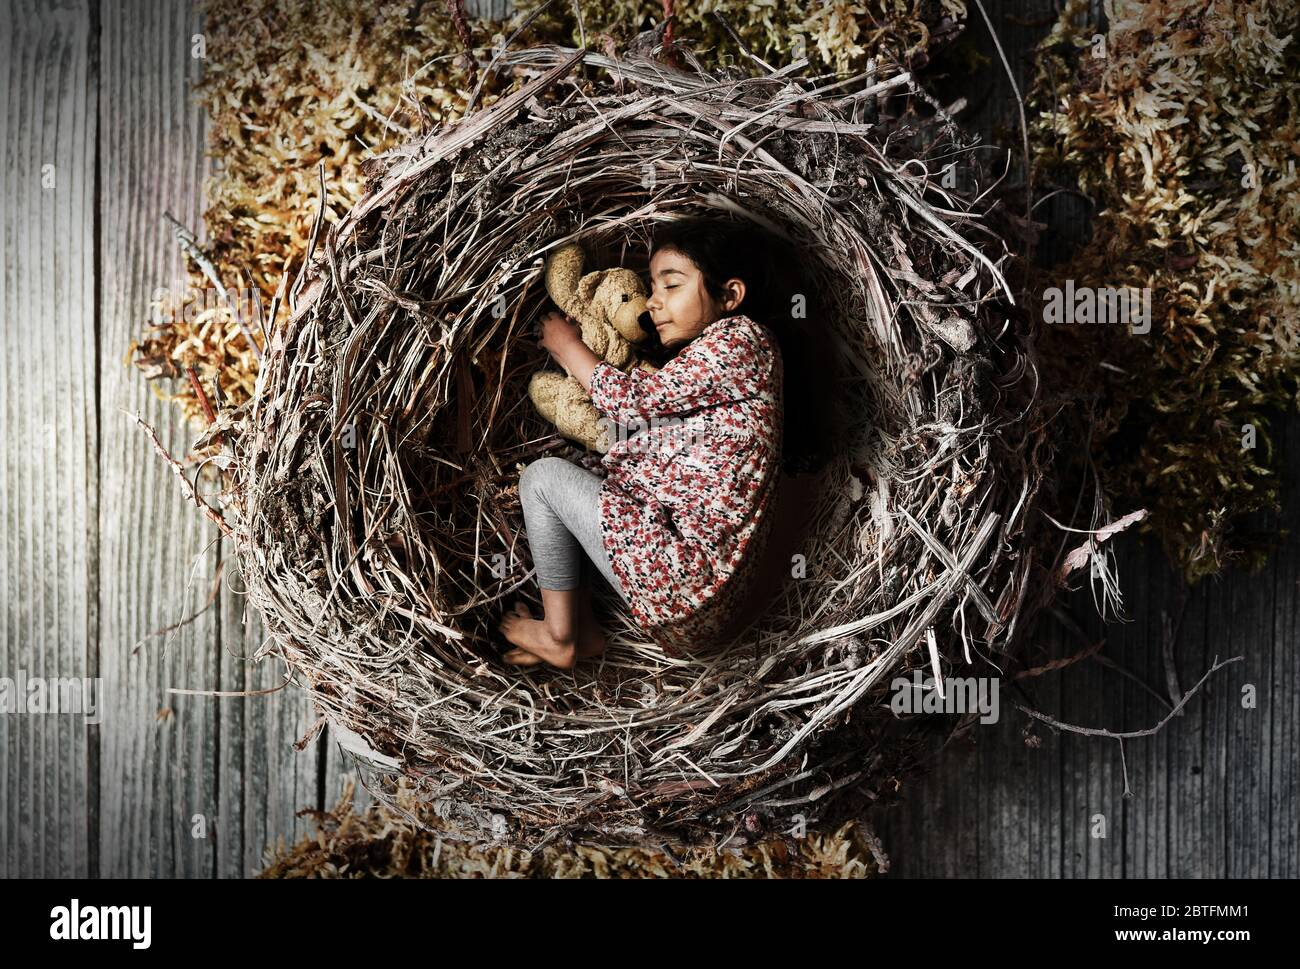 little girl sleeping peacefully and quietly in a nest, concept of protection and security for children, retro style colors, sign of love for children Stock Photo